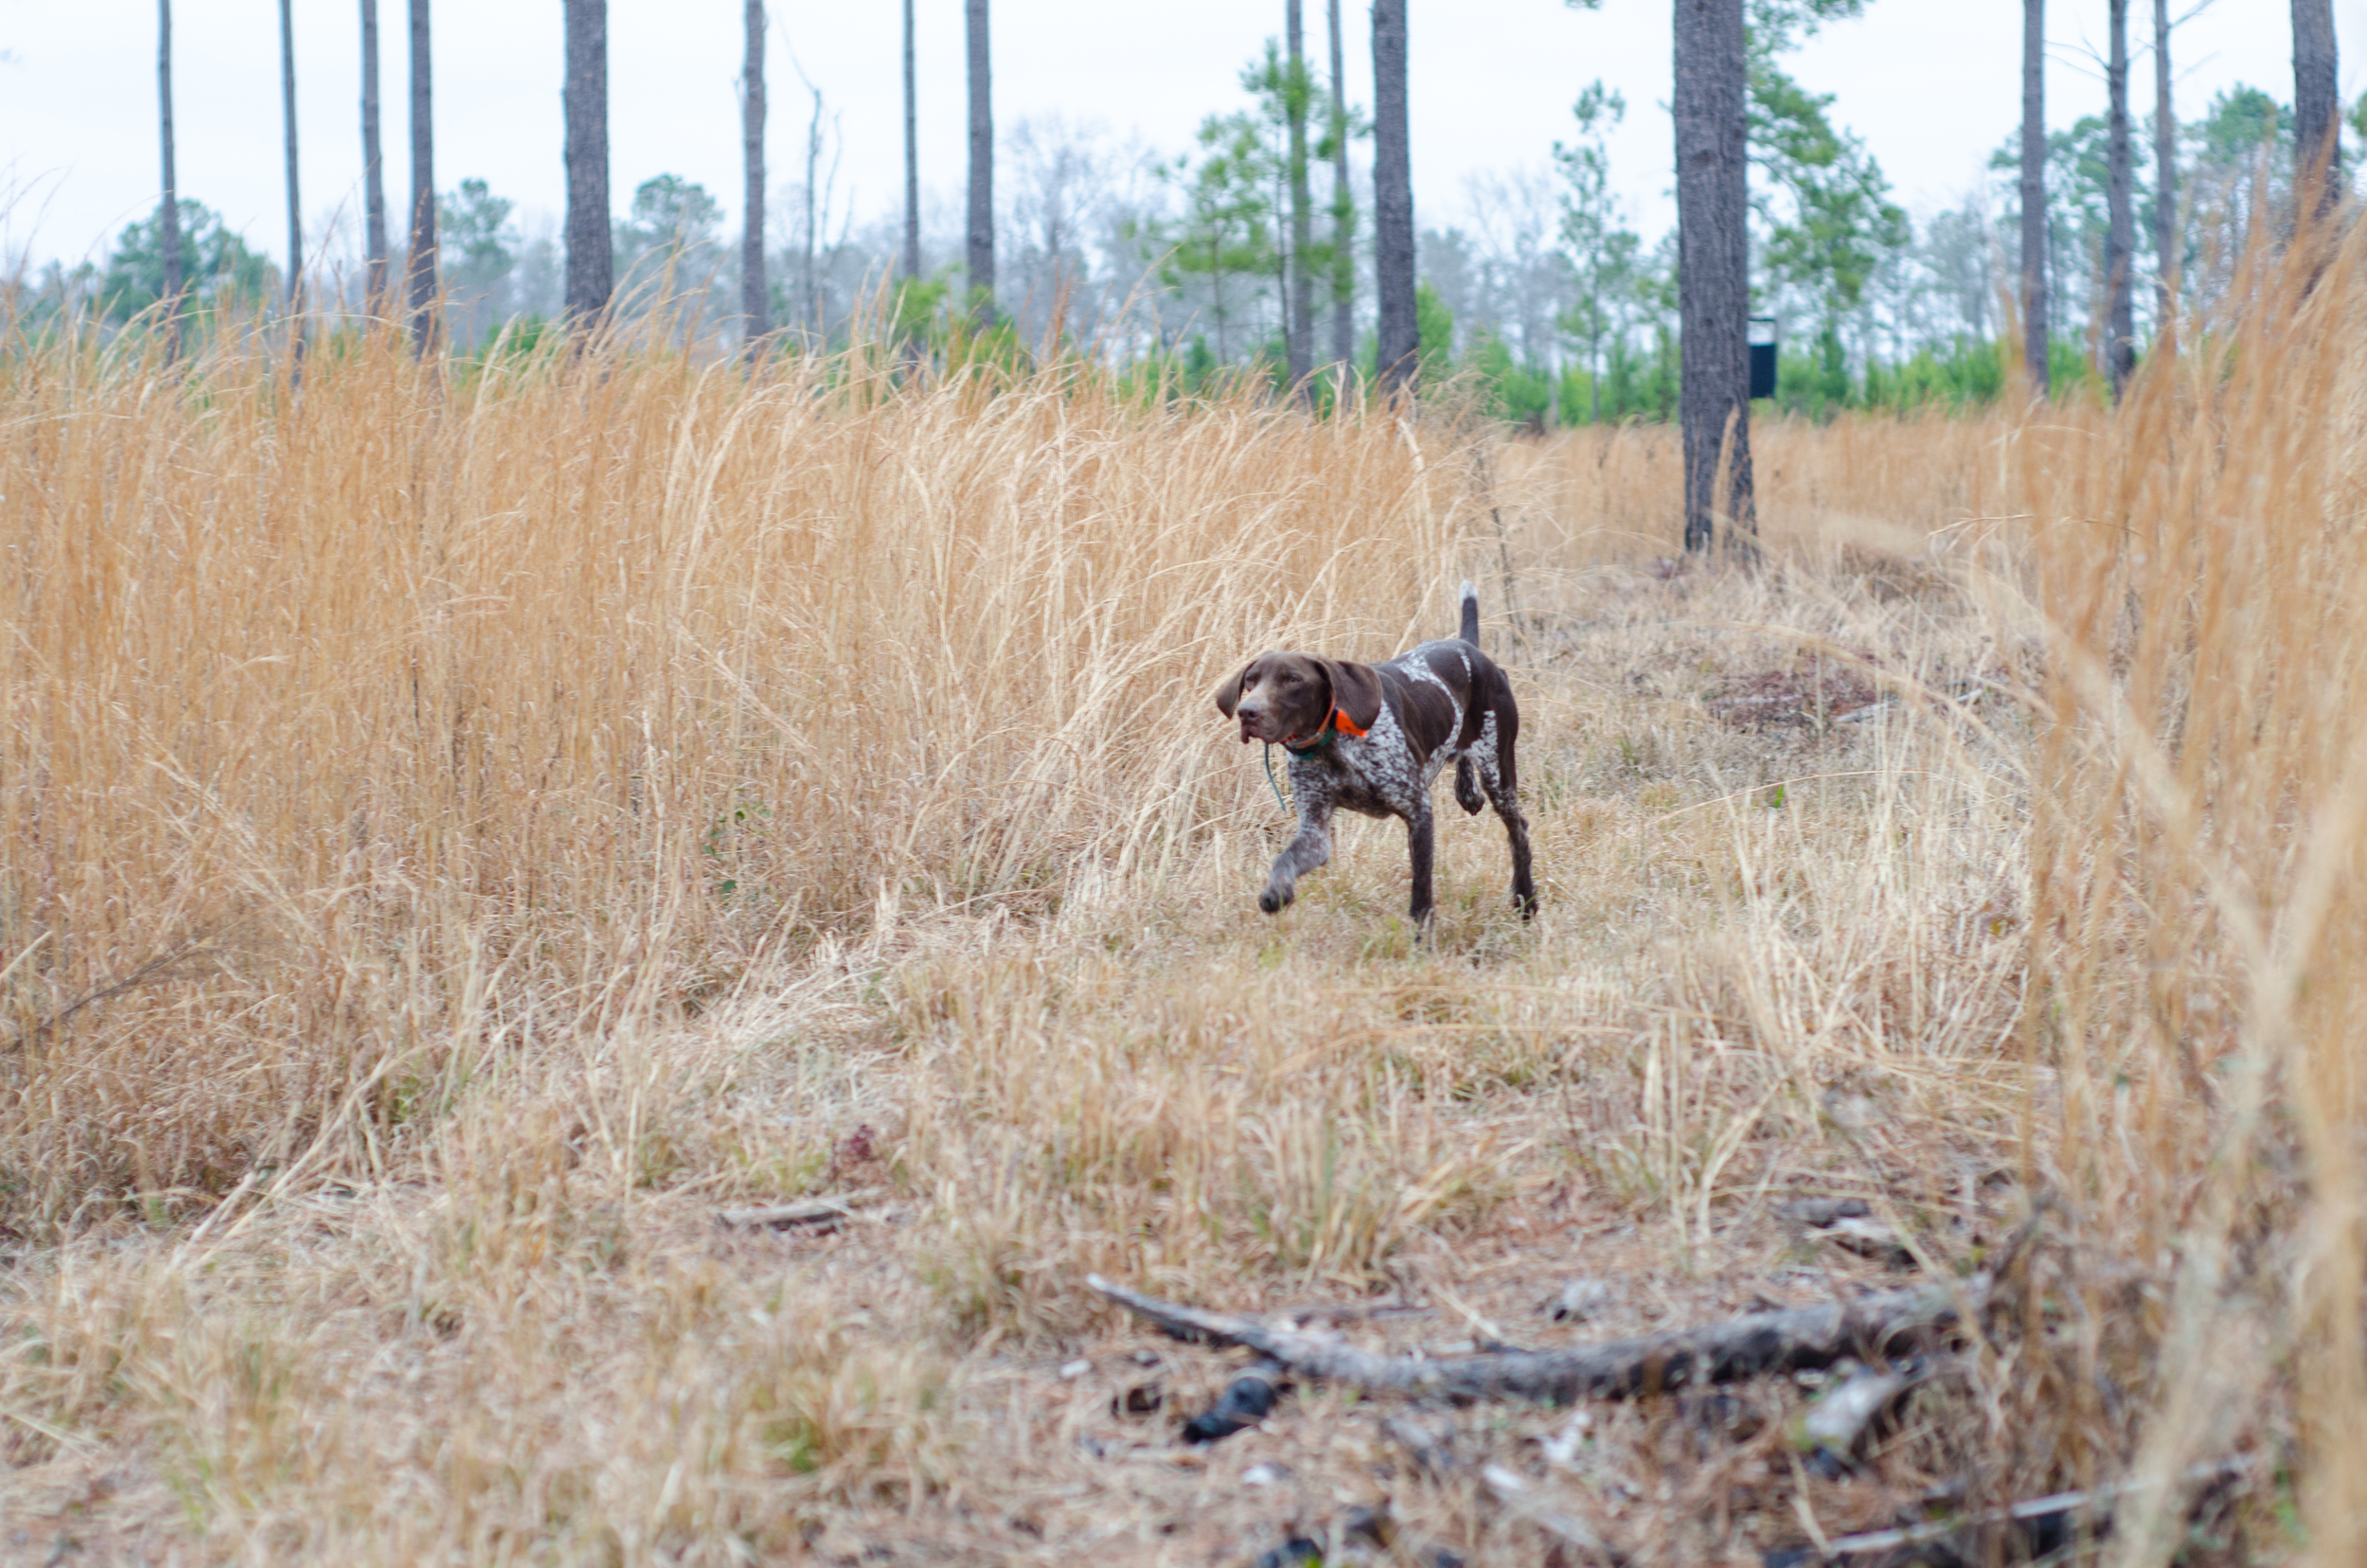 A bird dog following the scent.